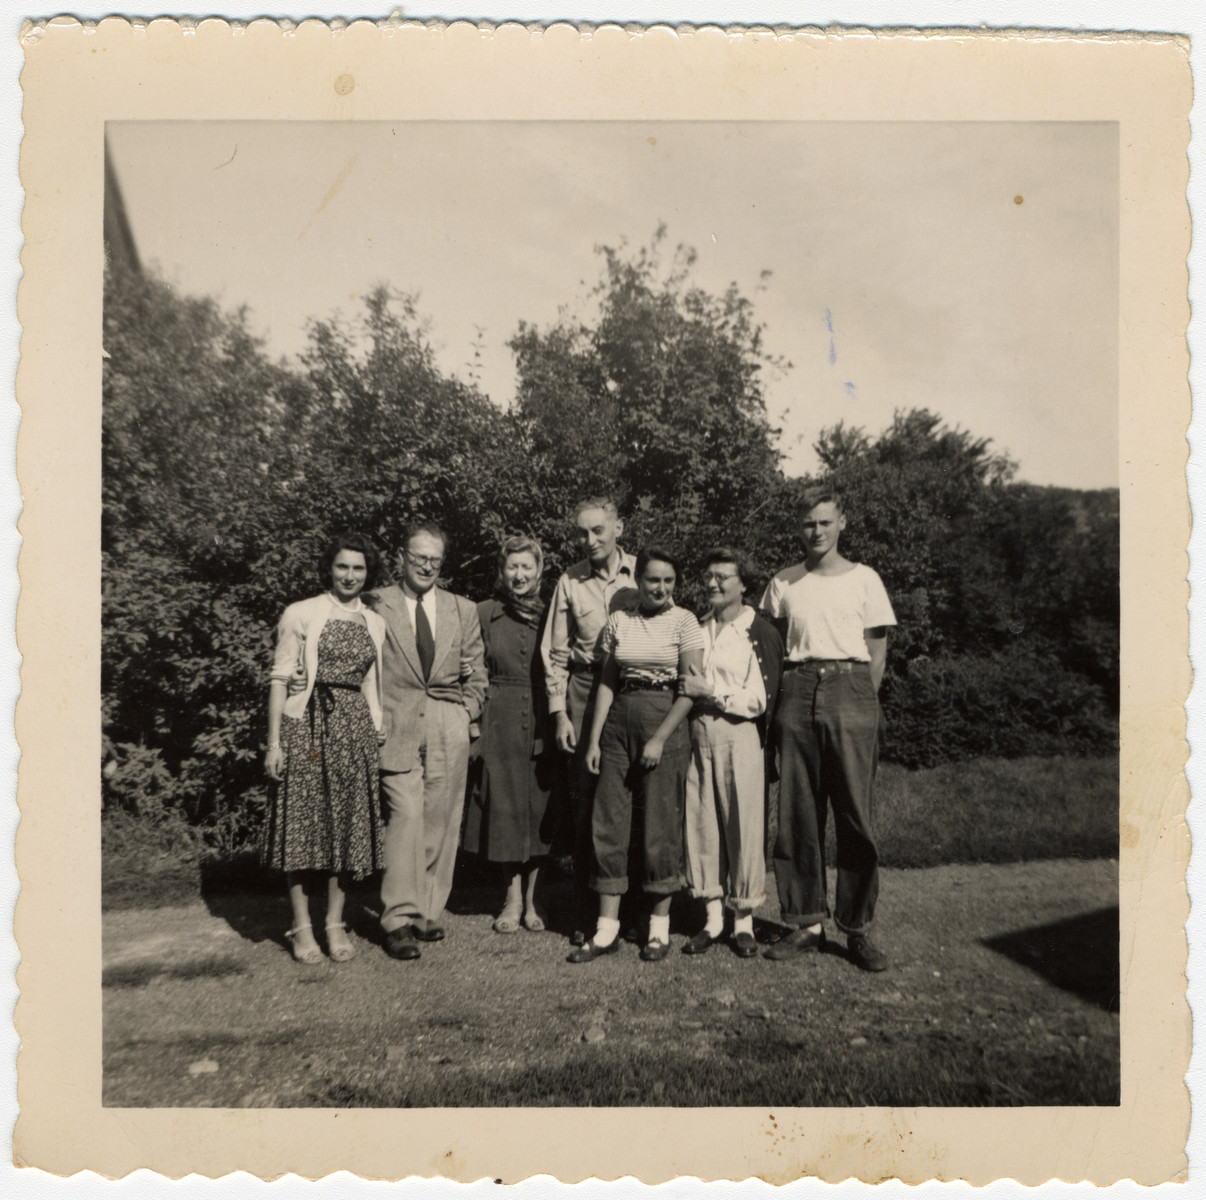 The Engel family poses on their farm in upstate New York.  Ludwig Engel is standing in the center.  To his right are his daughter Katie, wife Greta and son Adi.